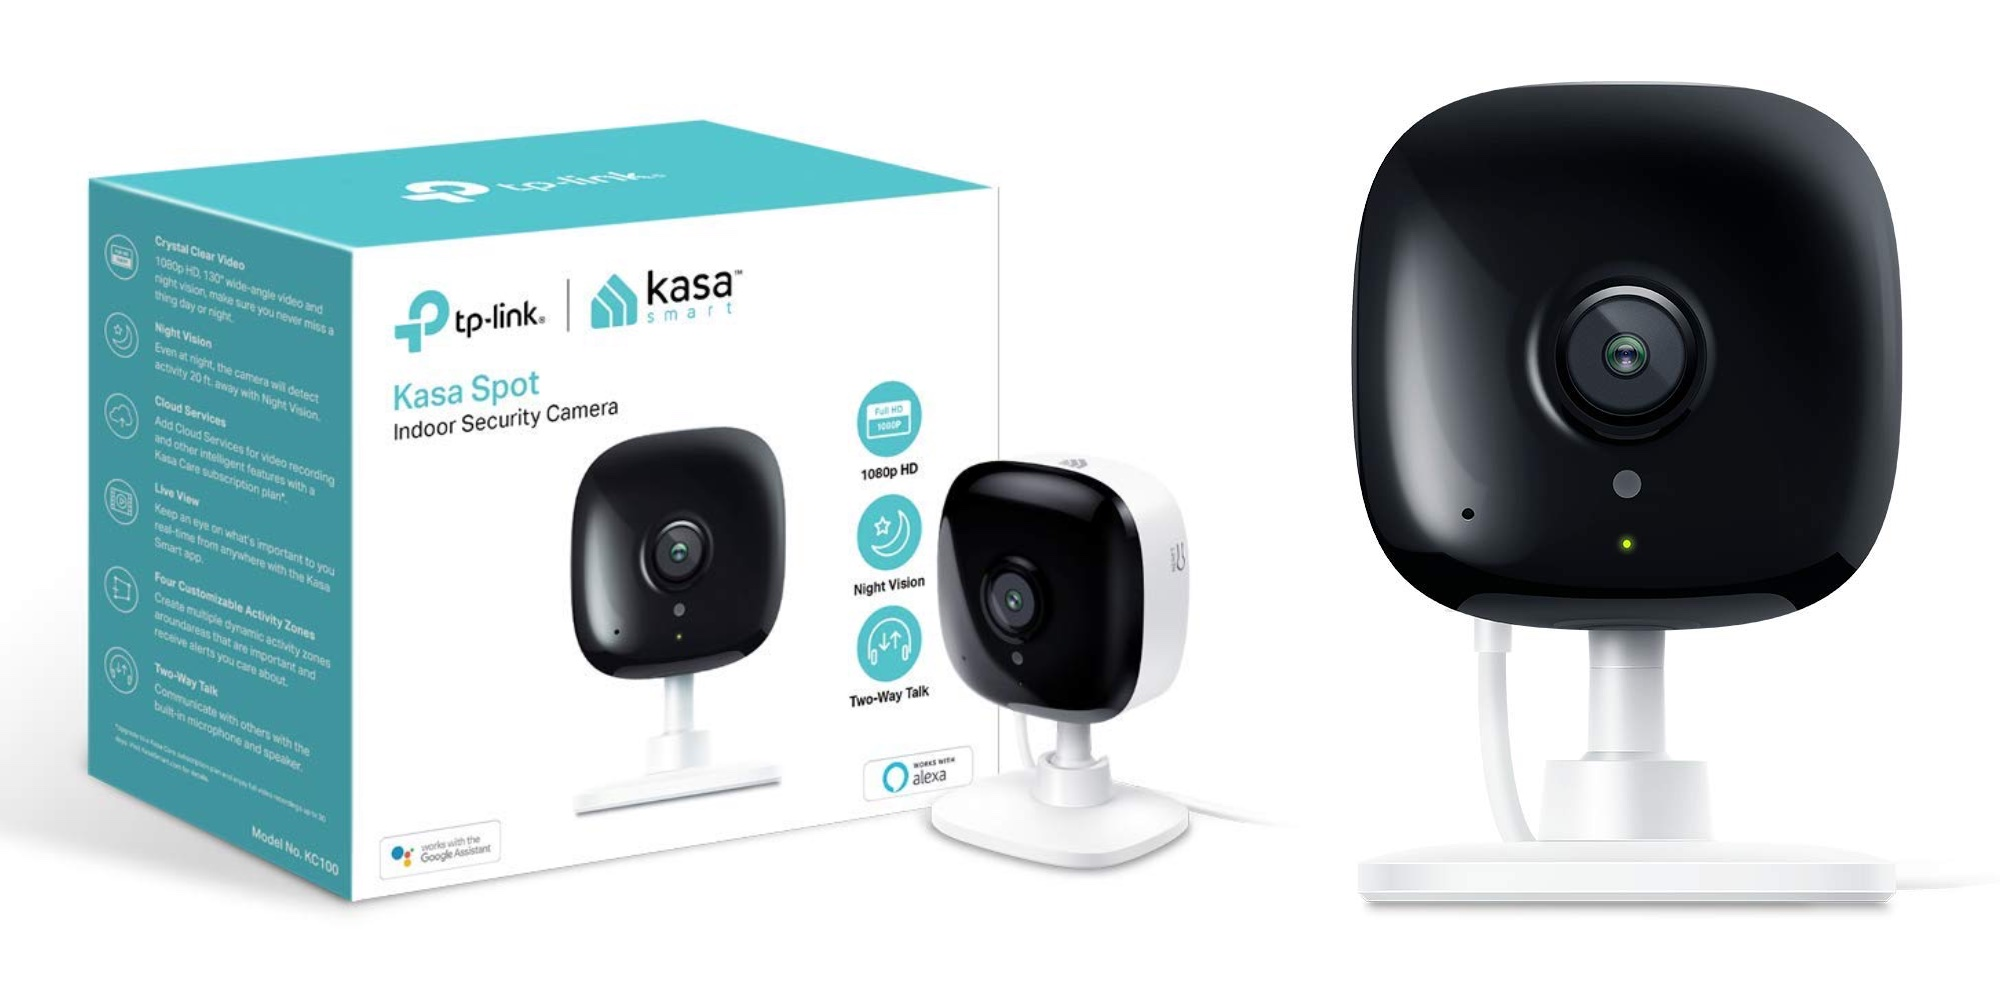 Snag two TP-Link Kasa KC100 1080p Smart Security Cameras for an all-time low: $80 (20% off)